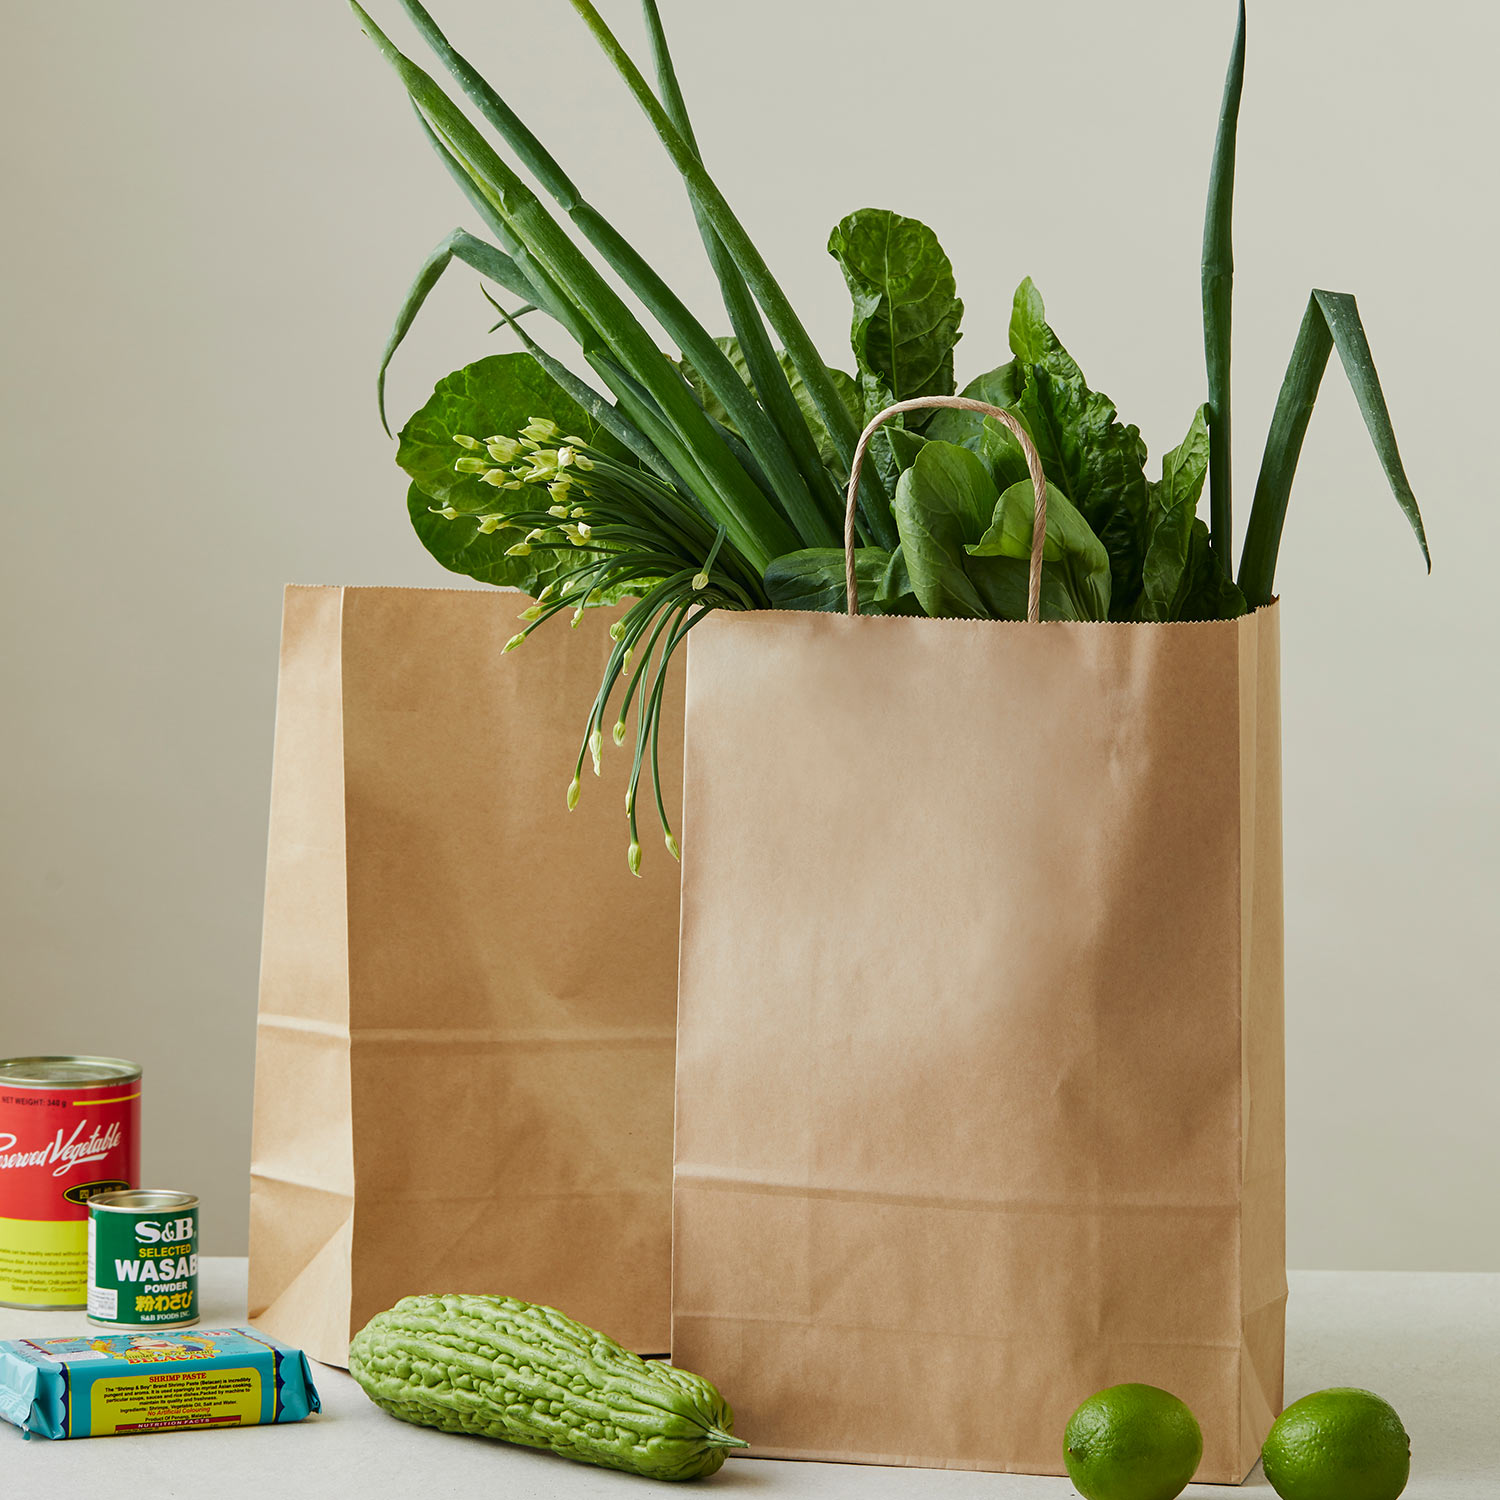 Image of paper bags used for groceries